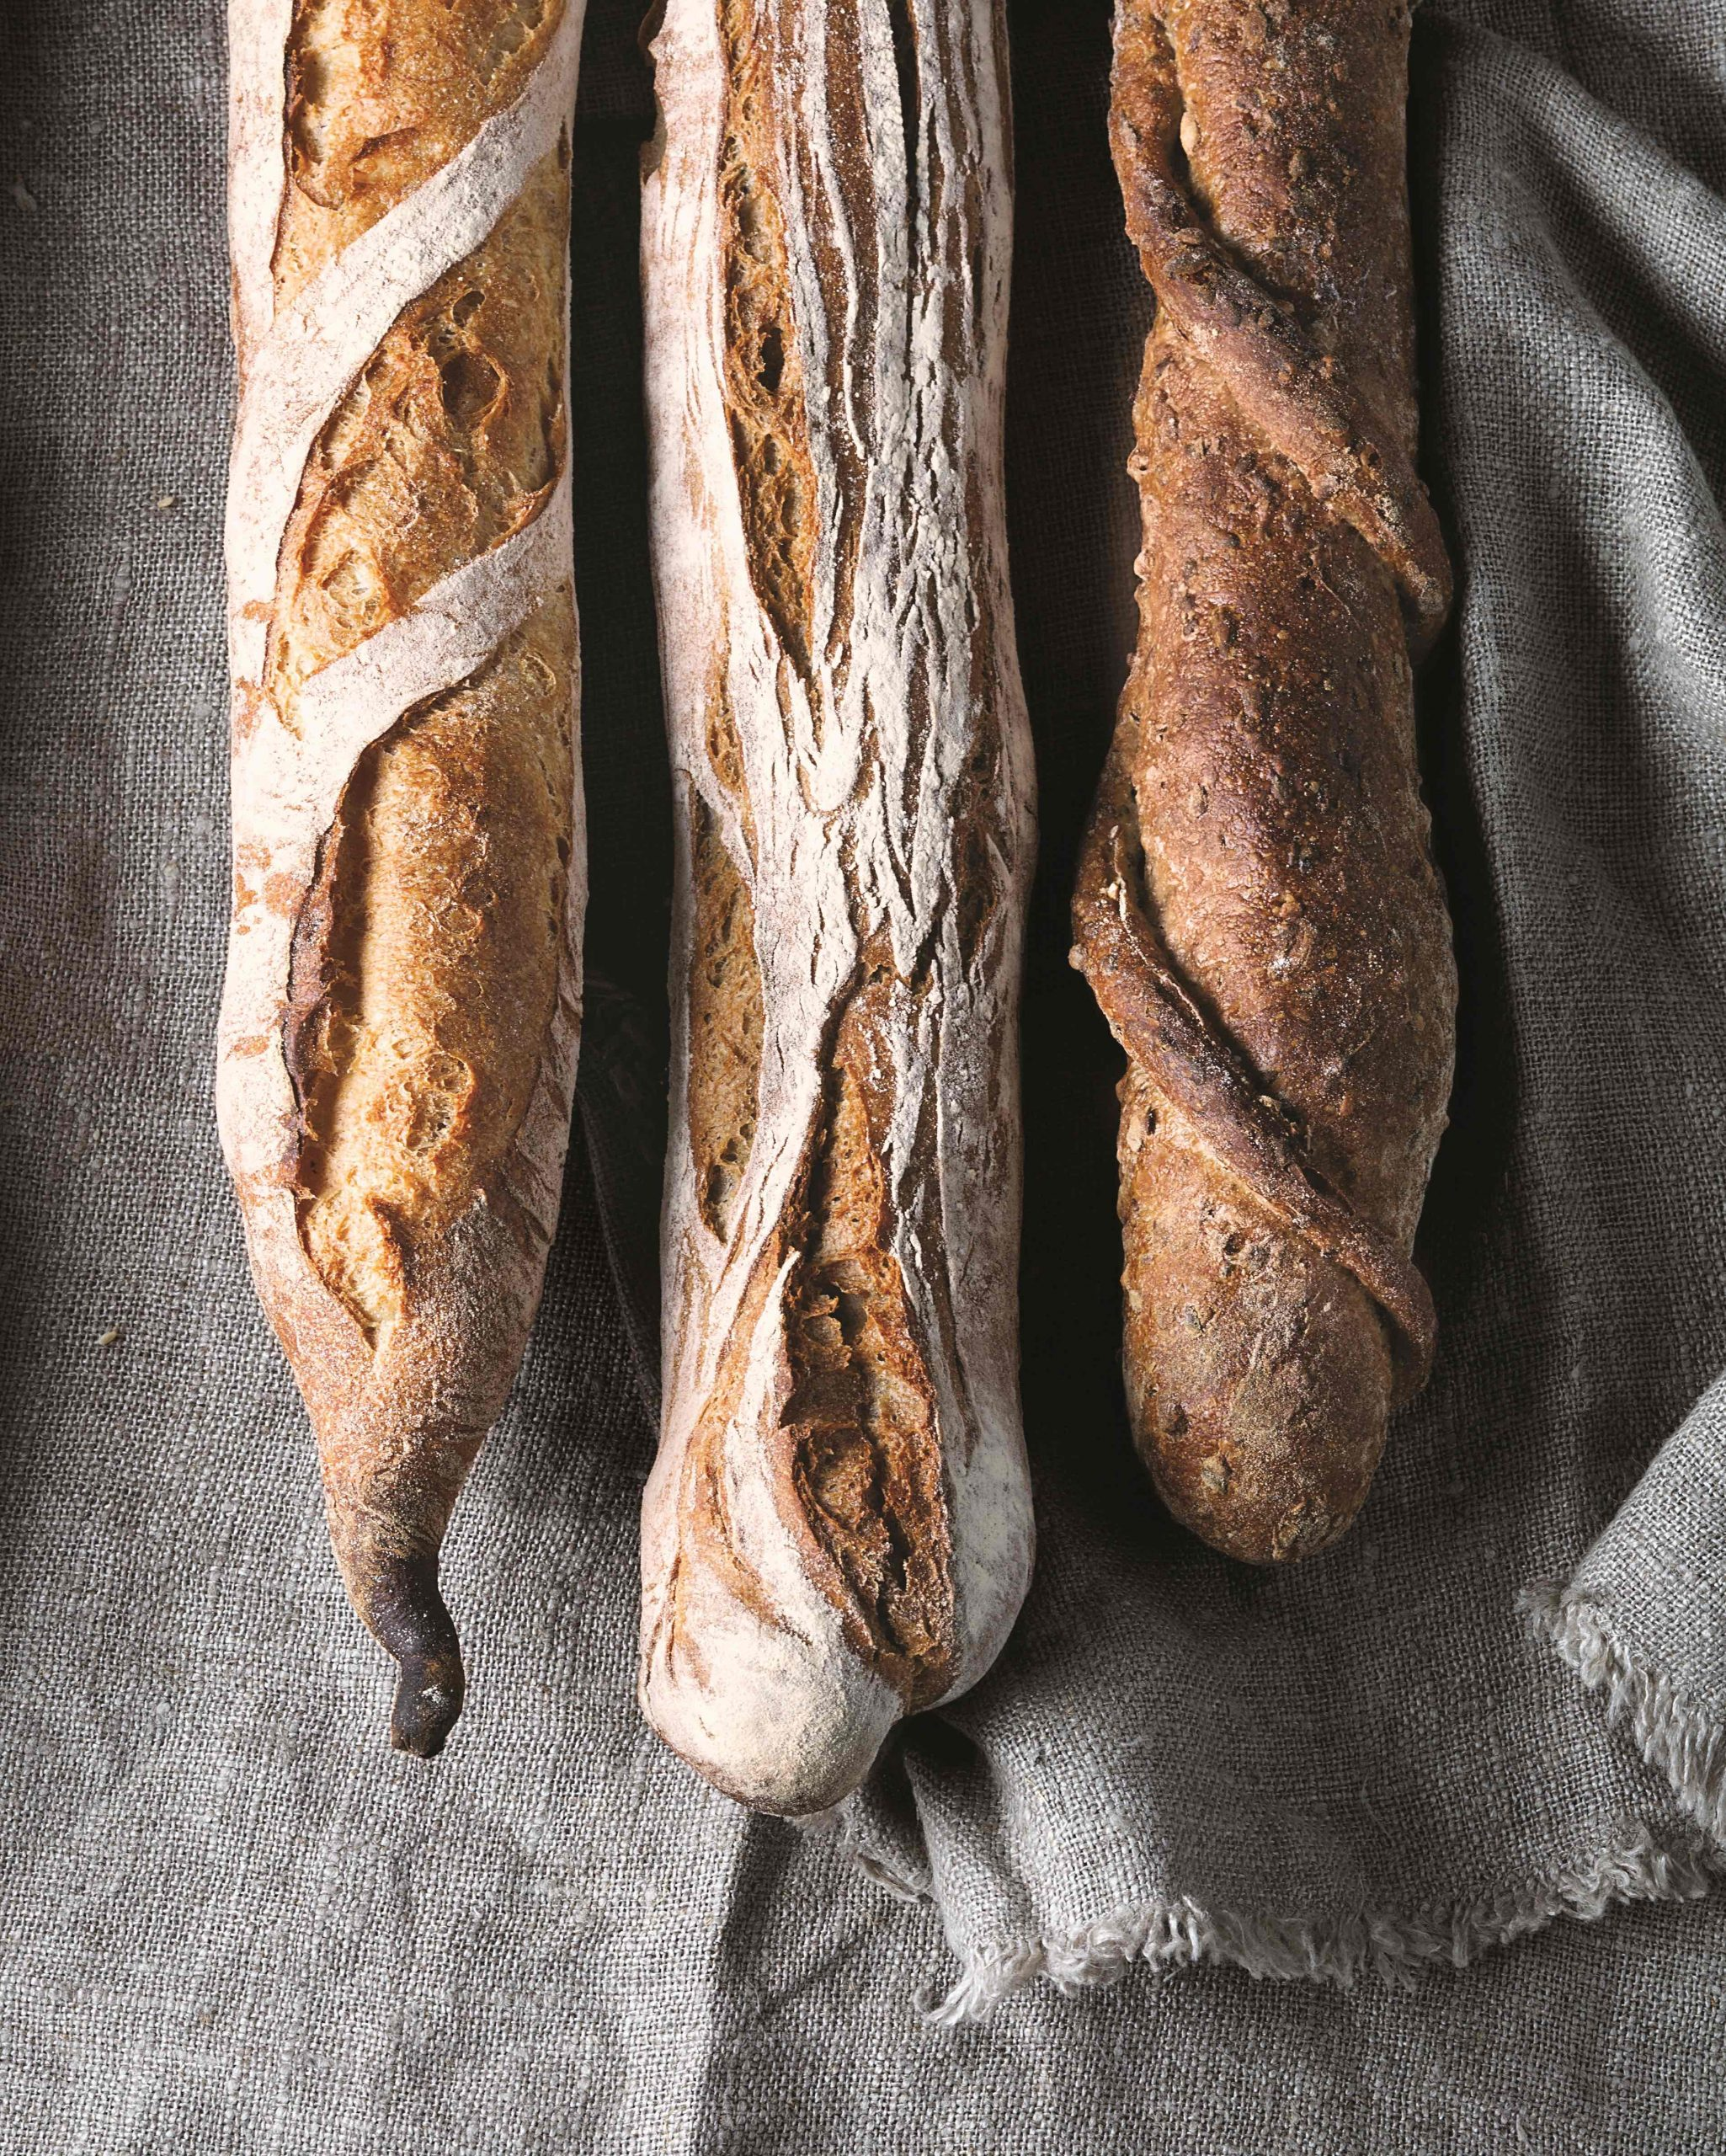 Holiday Gift for a Bread Baker: Living